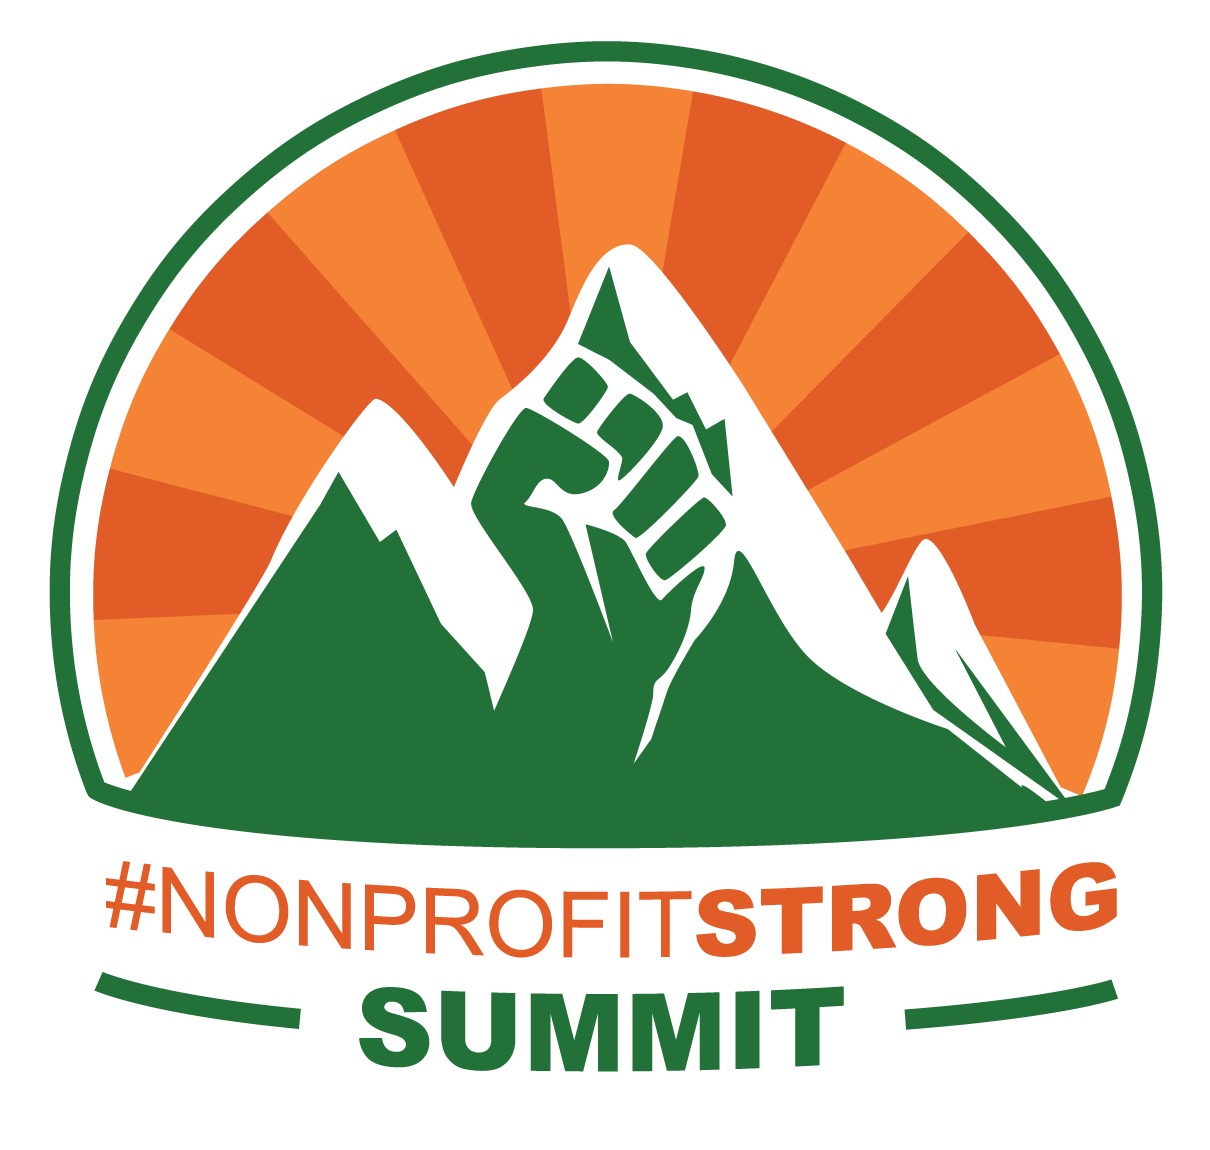 #NonprofitSTRONG Summit Logo